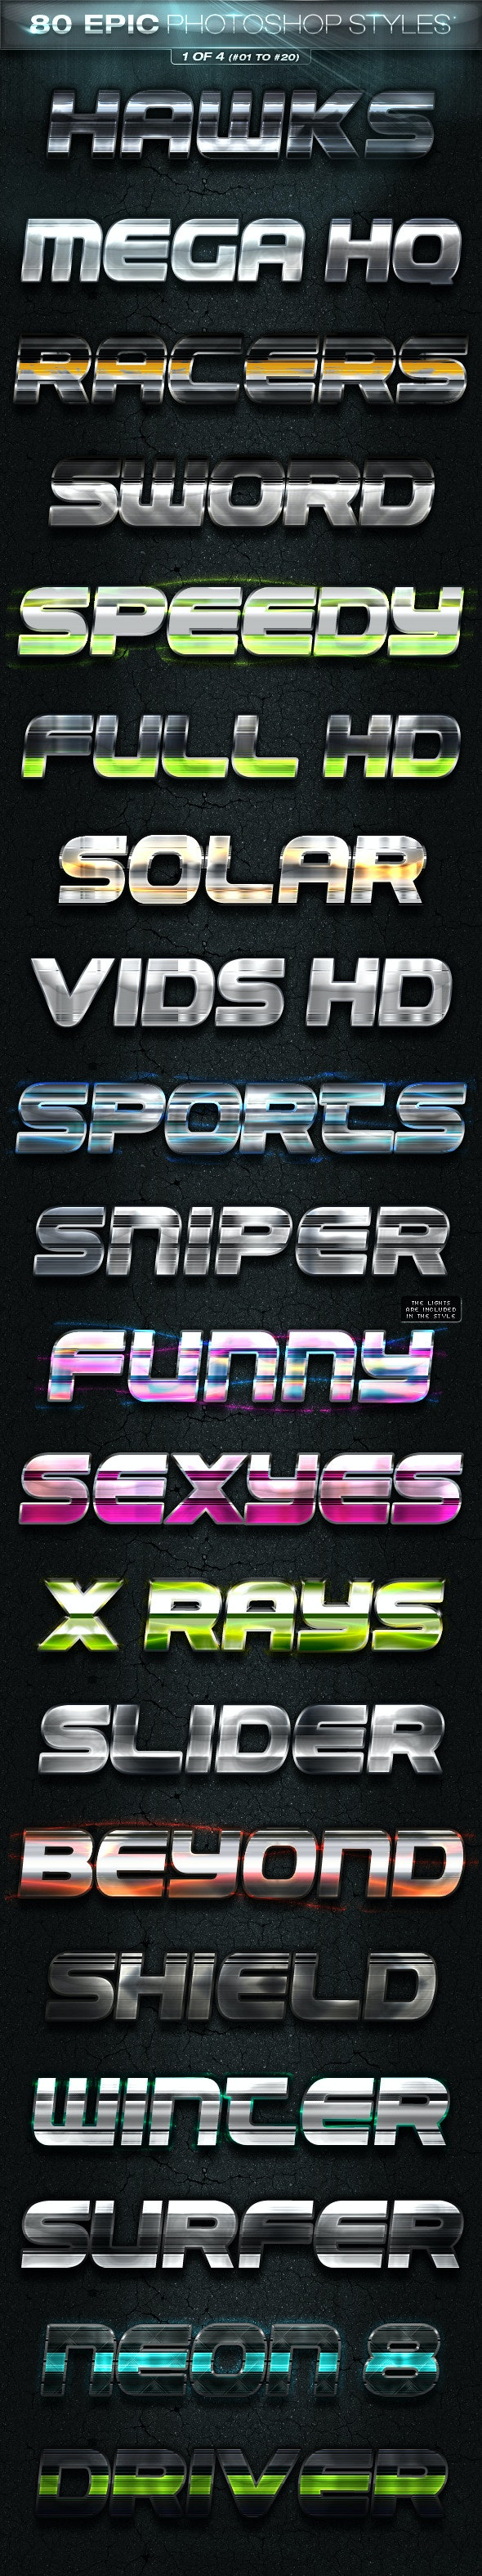 80 EPIC Photoshop Styles 1 of 4 - Text Effects Styles